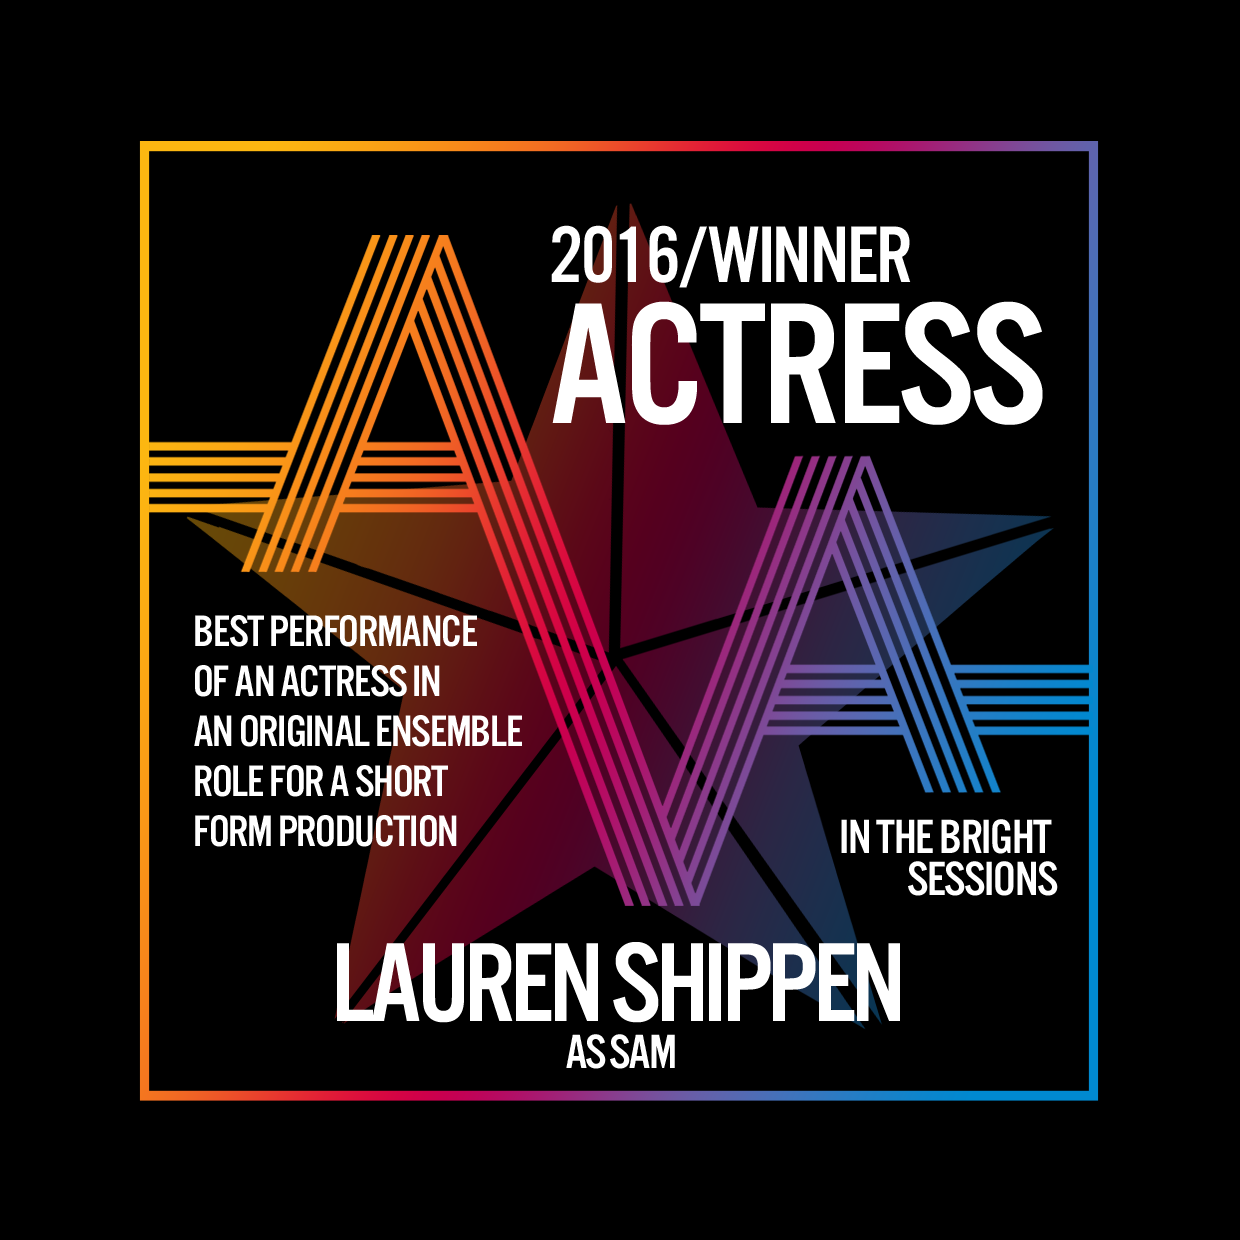 Best Performance of an Actress in an Original Ensemble Role for a Short Form Production copy.png